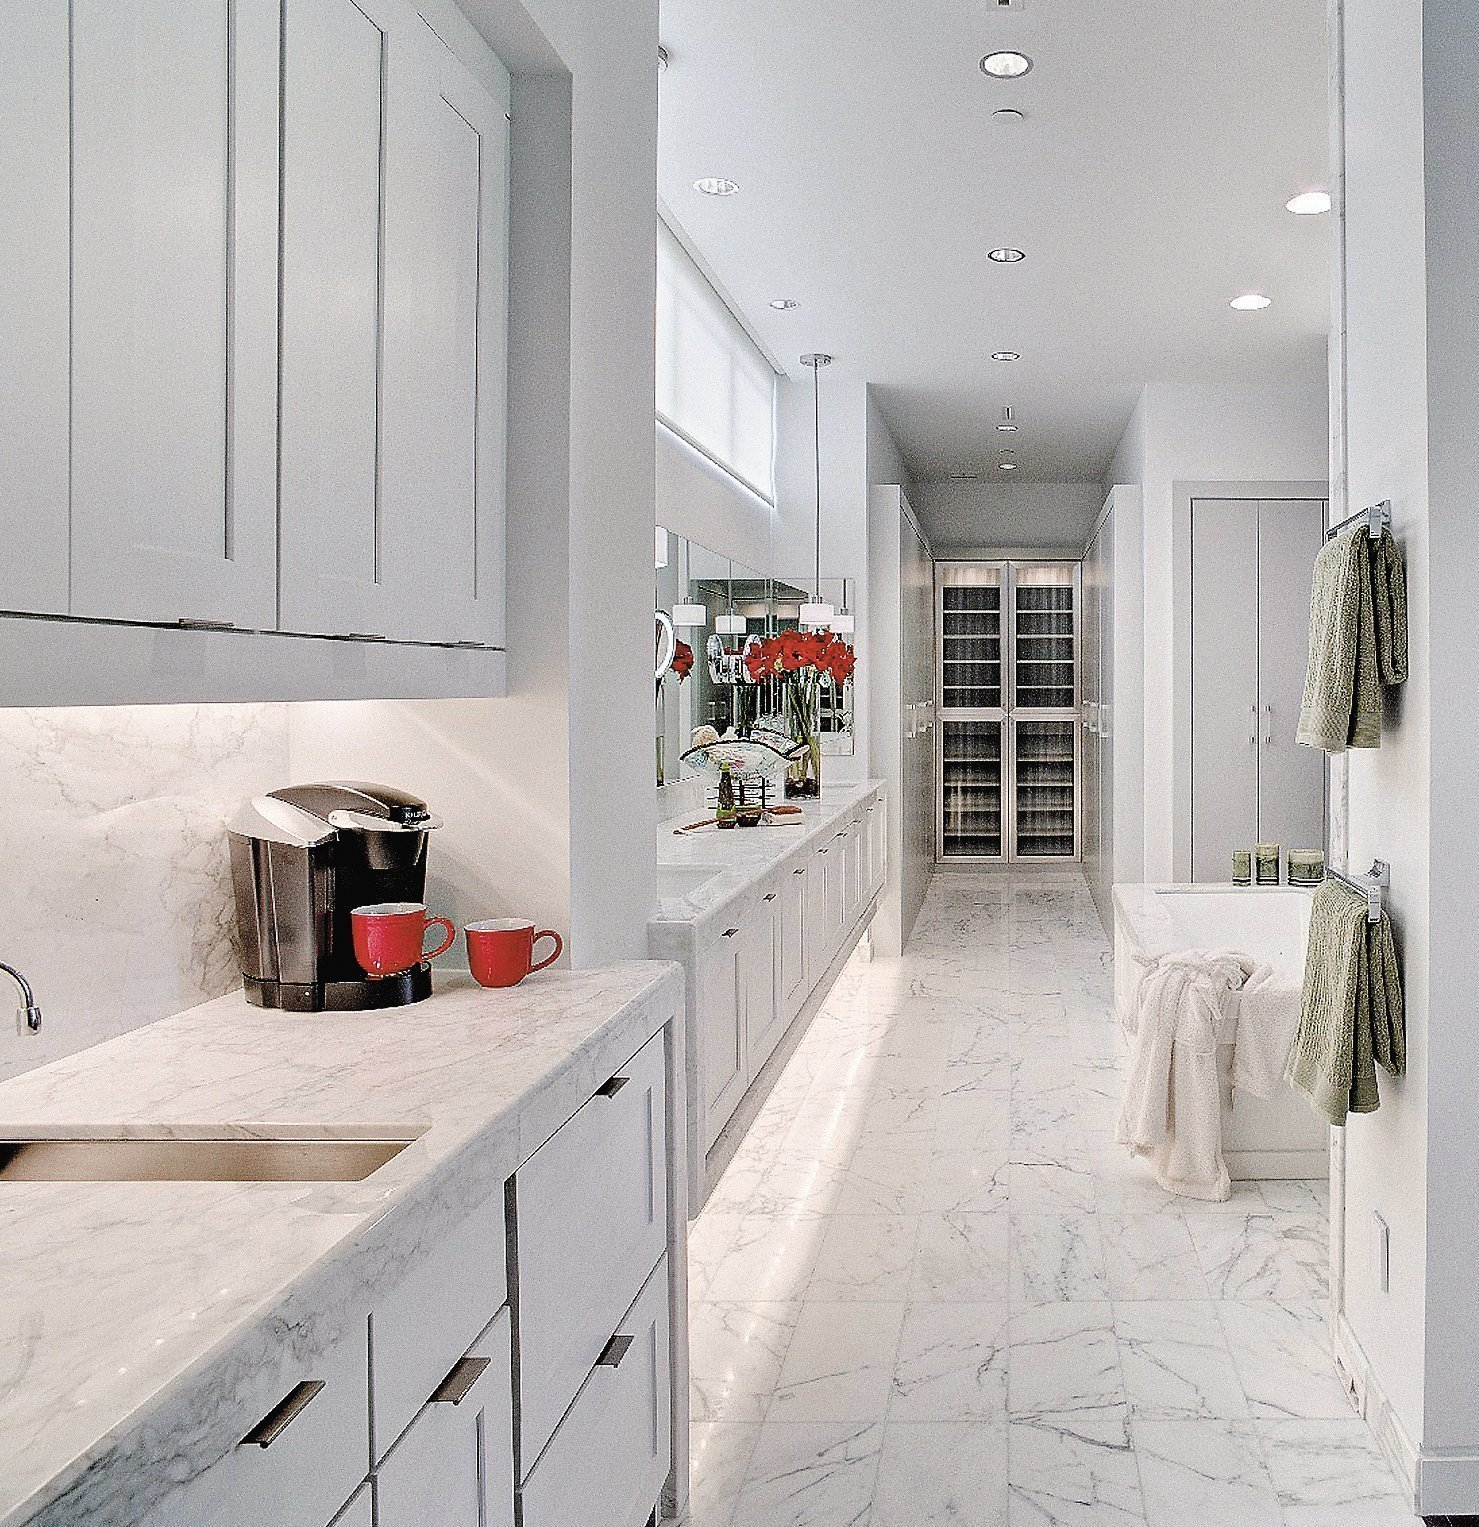 Master Bedroom Kitchenette morning kitchen brings basics into the bedroom, be it a